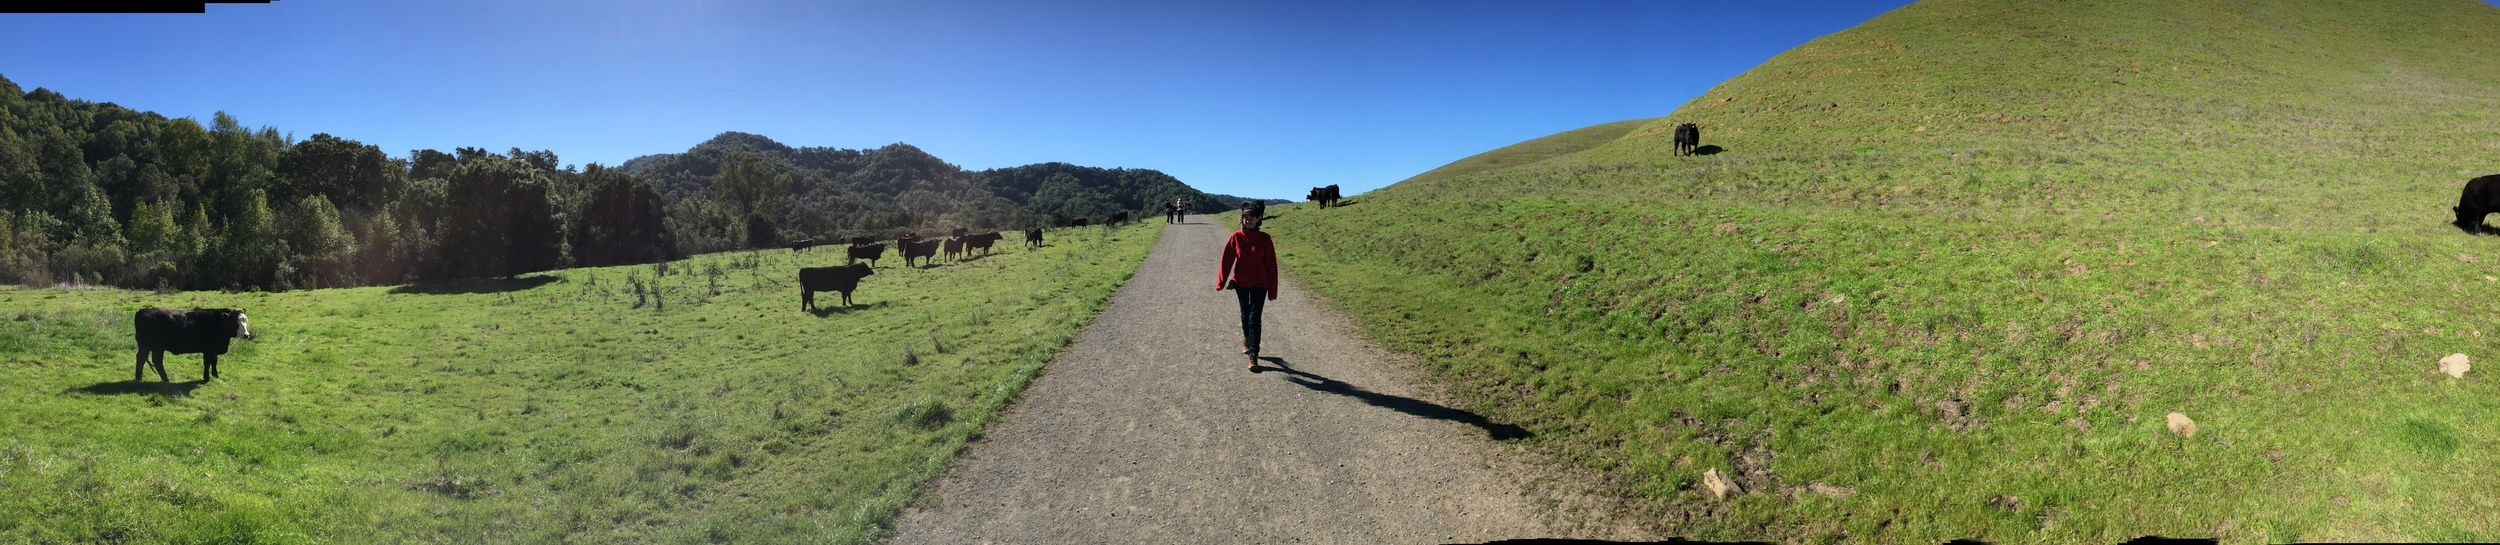 Except, at one point there were cows along the trail, and I was nervous because I was wearing red.